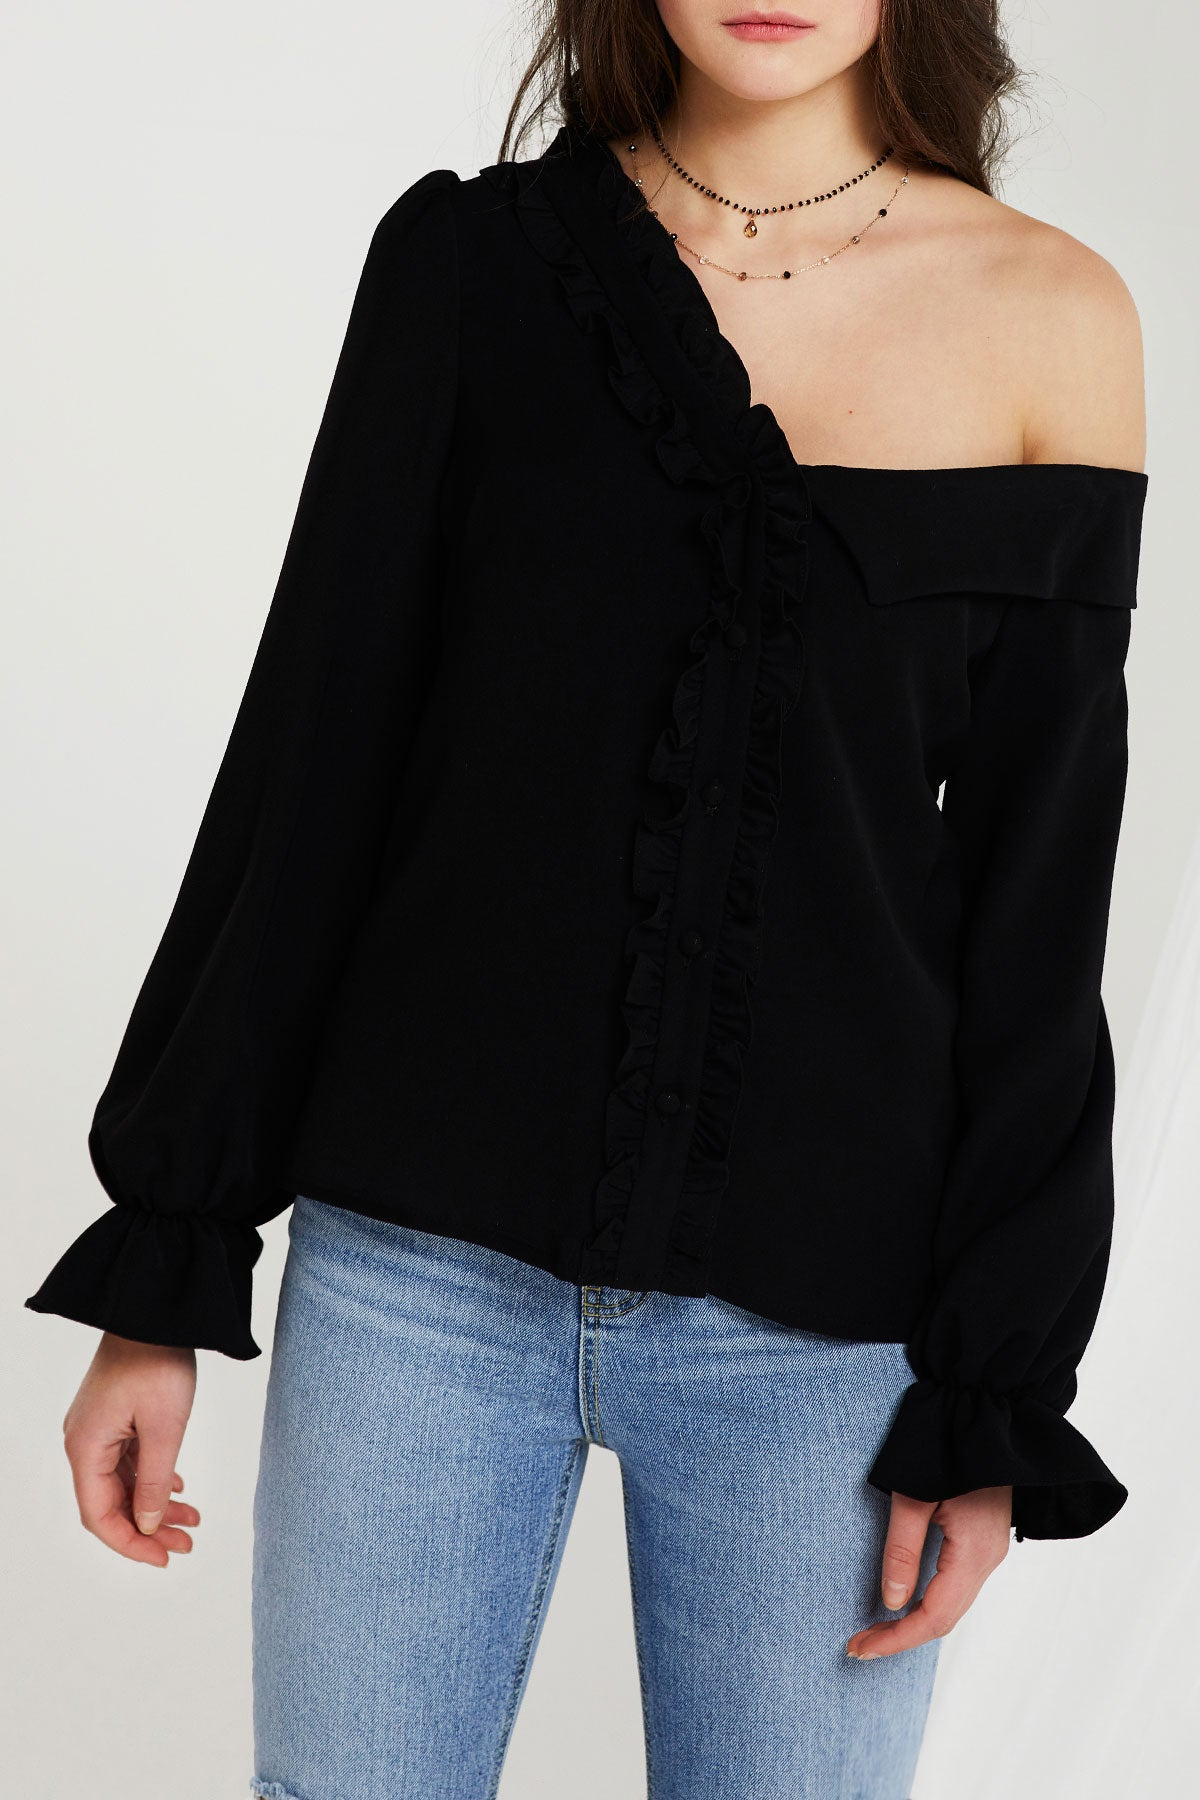 Lucca One Shoulder Blouse